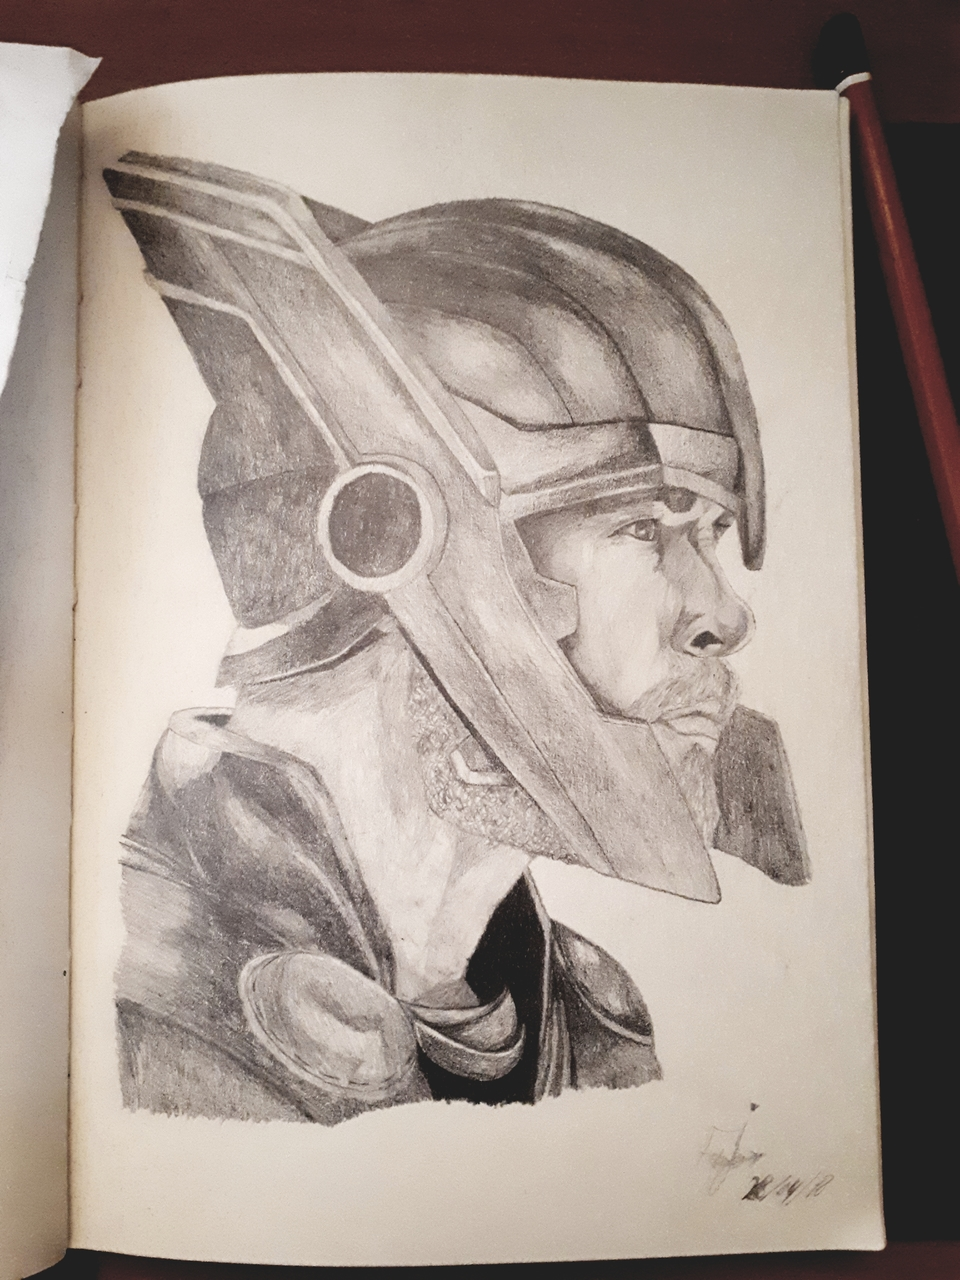 Pencil drawing of thor in his latest movie thor ragnarok